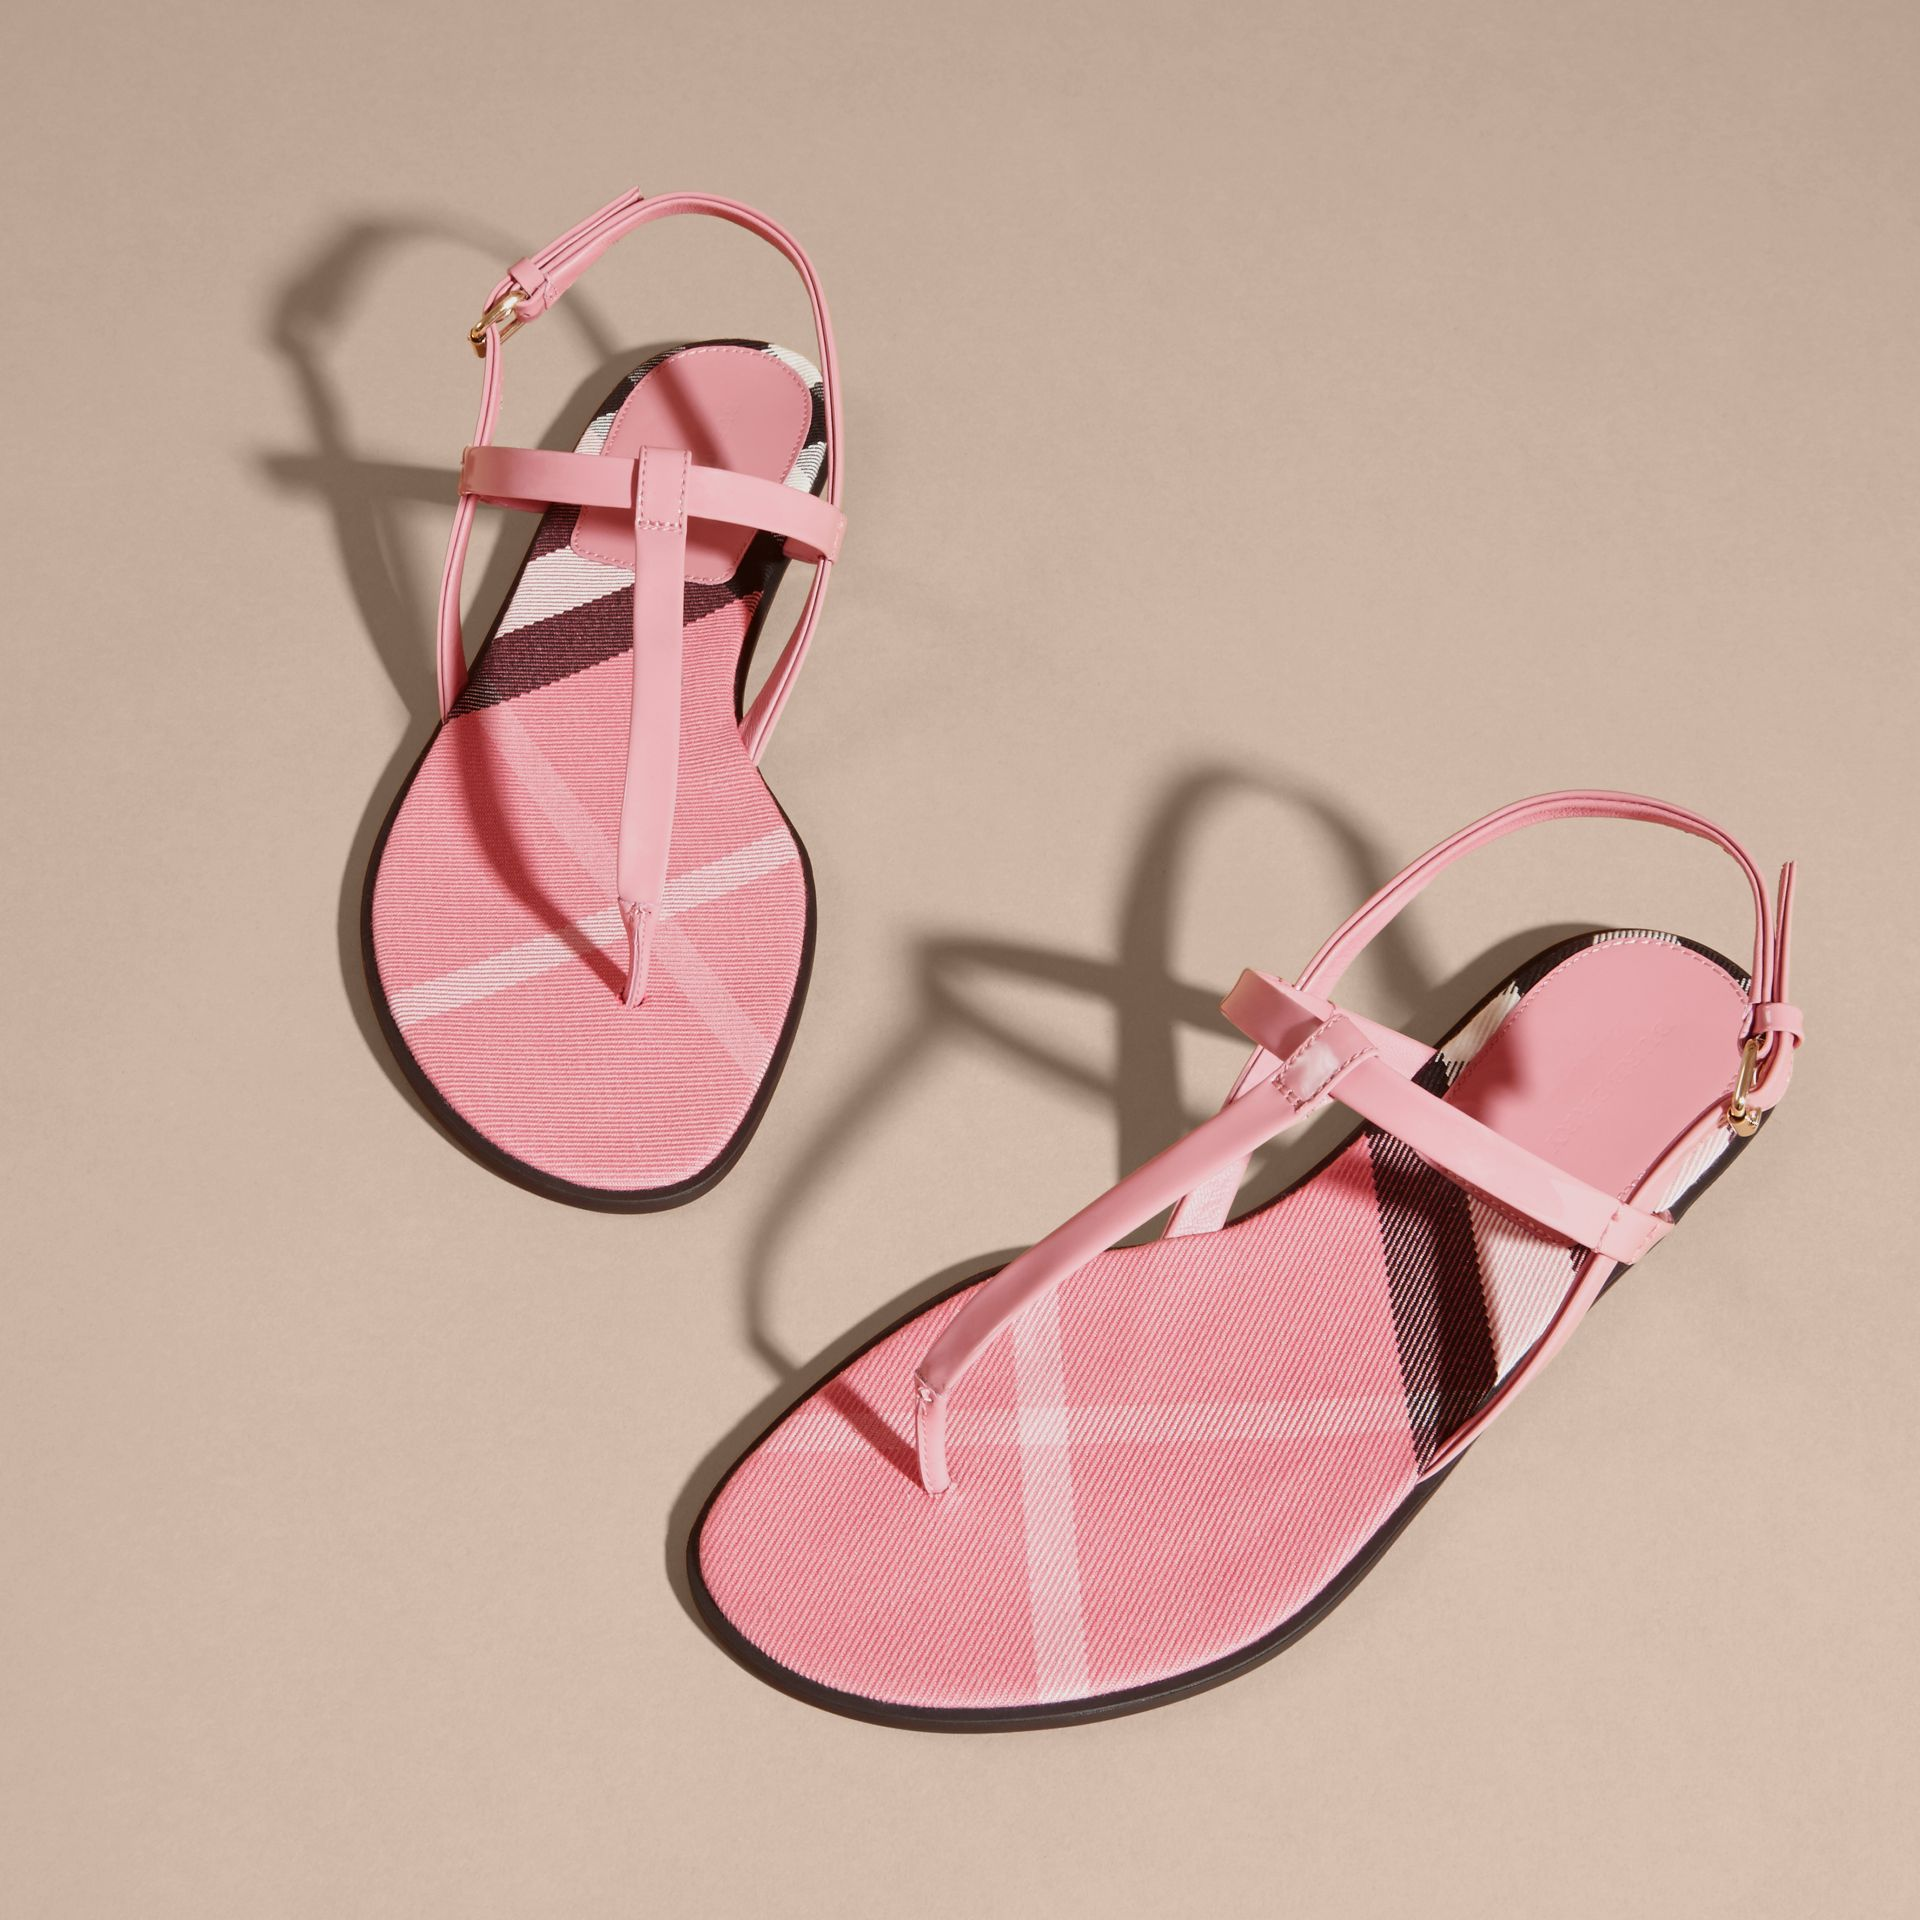 Berry pink House Check-lined Leather Sandals Berry Pink - gallery image 3